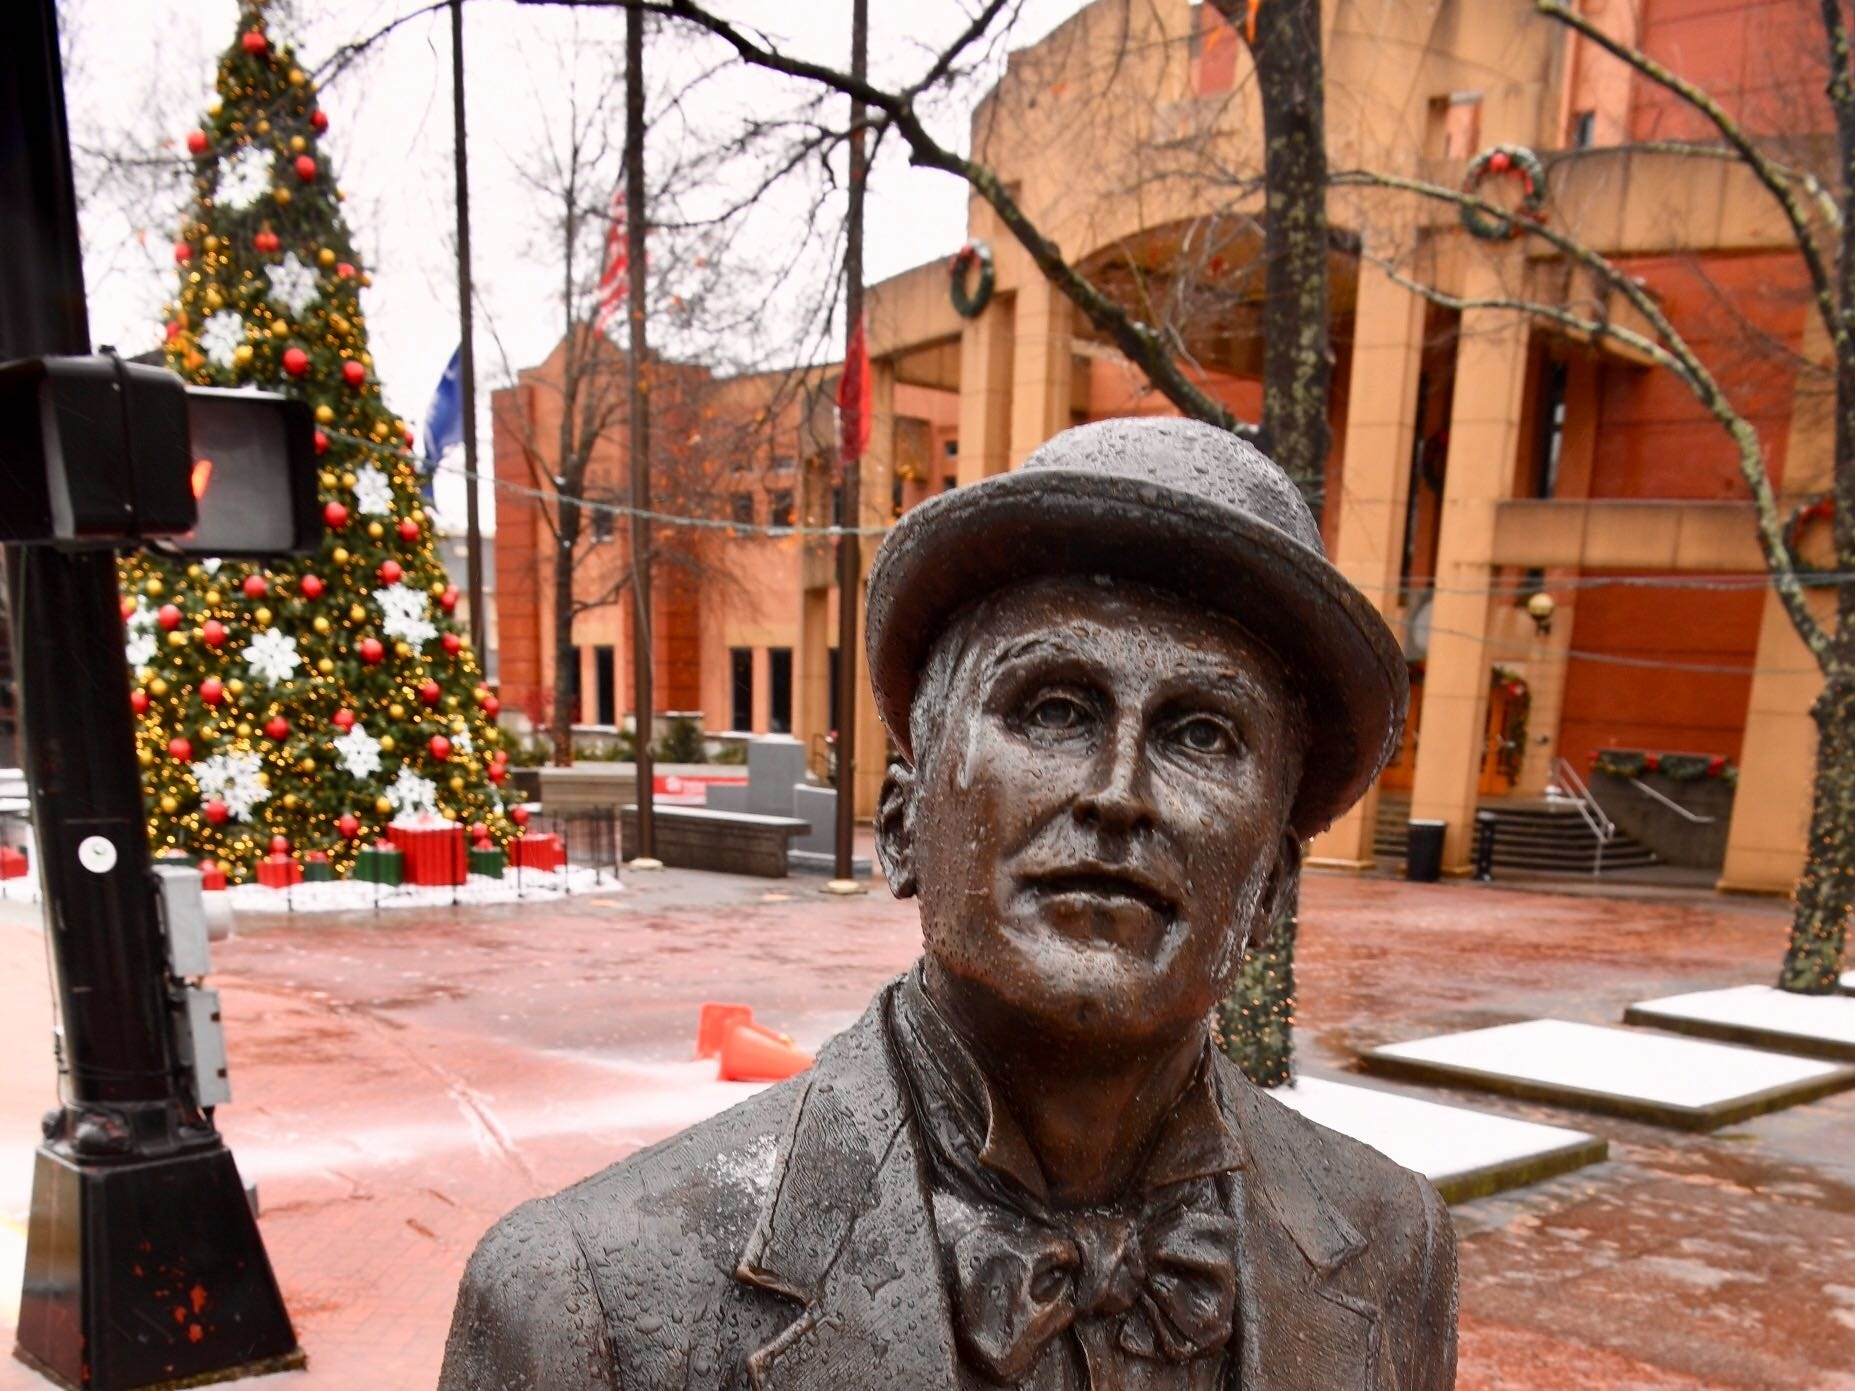 The William Whitner statue in front of the Anderson County Courthouse on Sunday, Dec. 9, 2018.